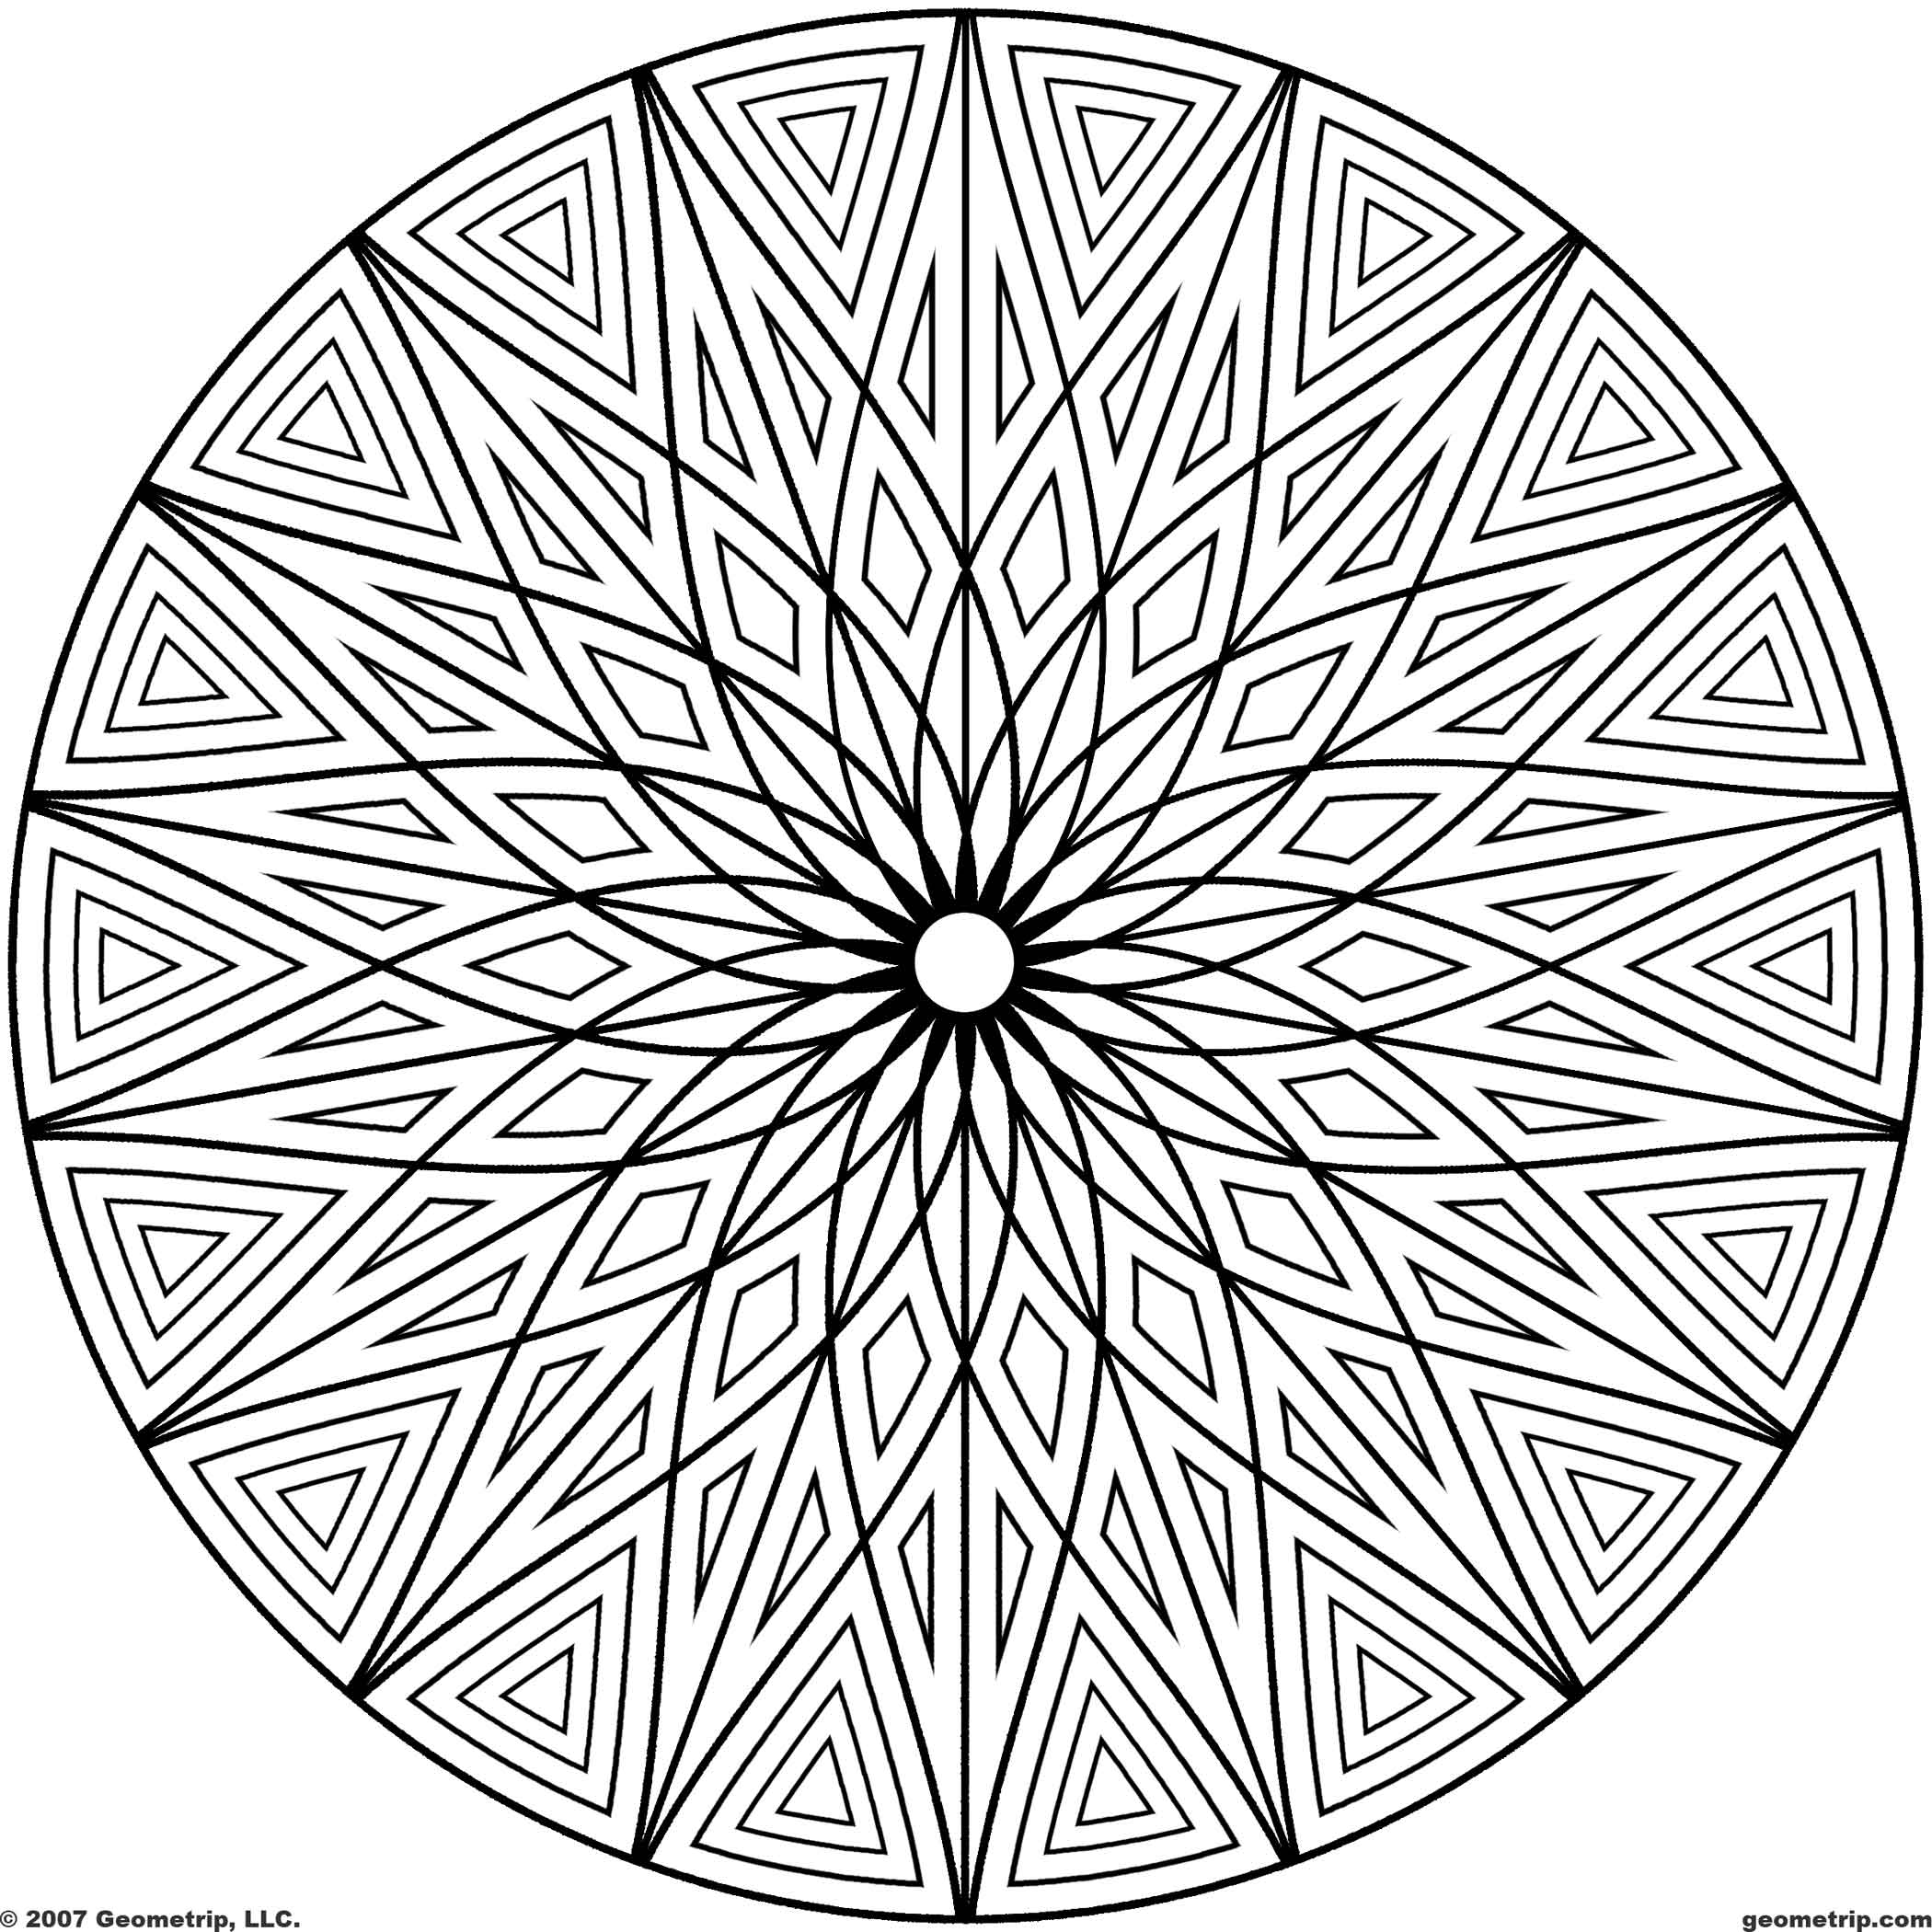 coloring pages abstract designs easy - coloring home - Coloring Pages Abstract Designs